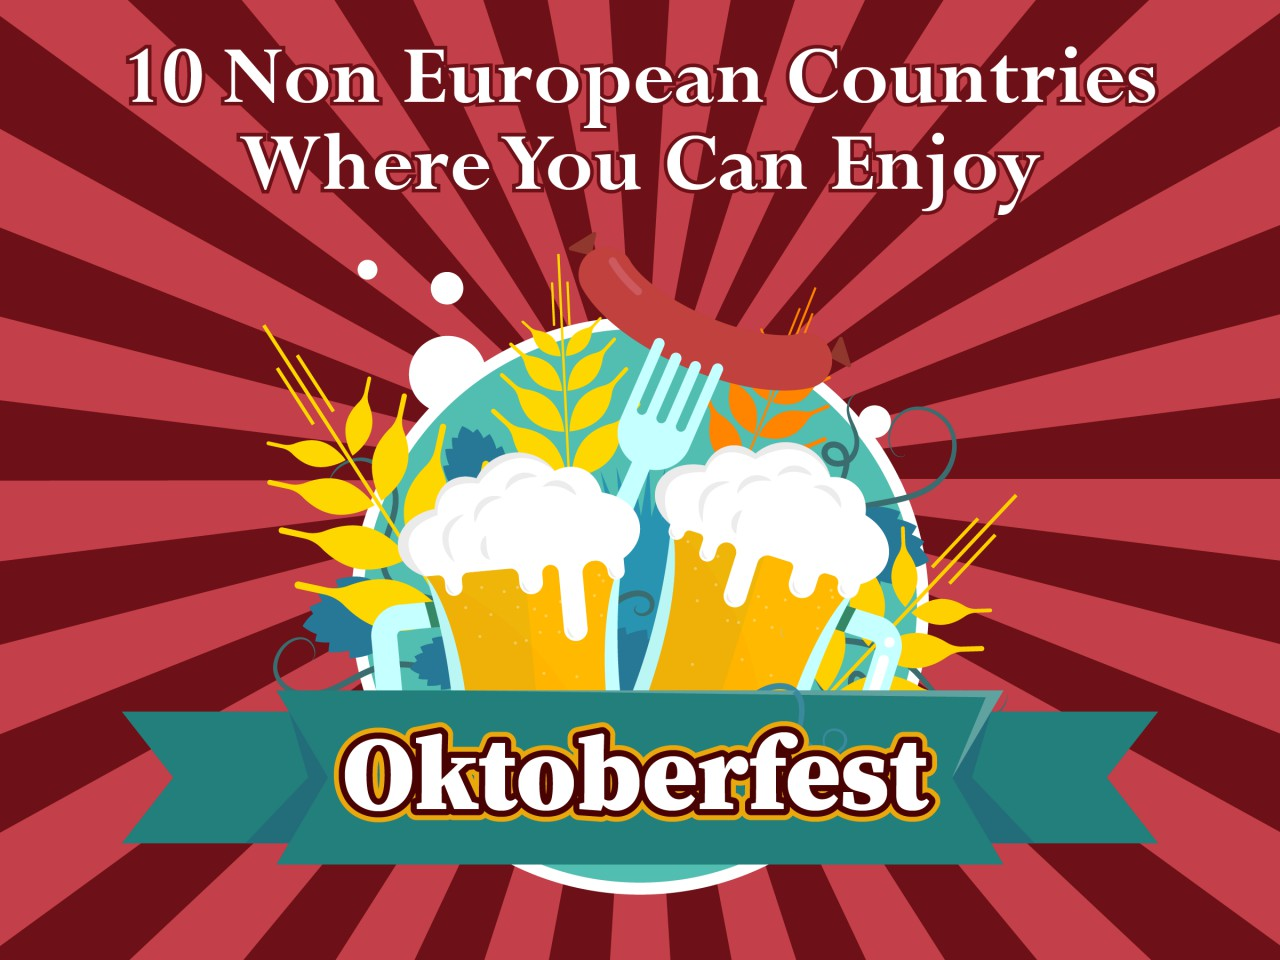 10 Non-European Countries Where You Can Enjoy Oktoberfest